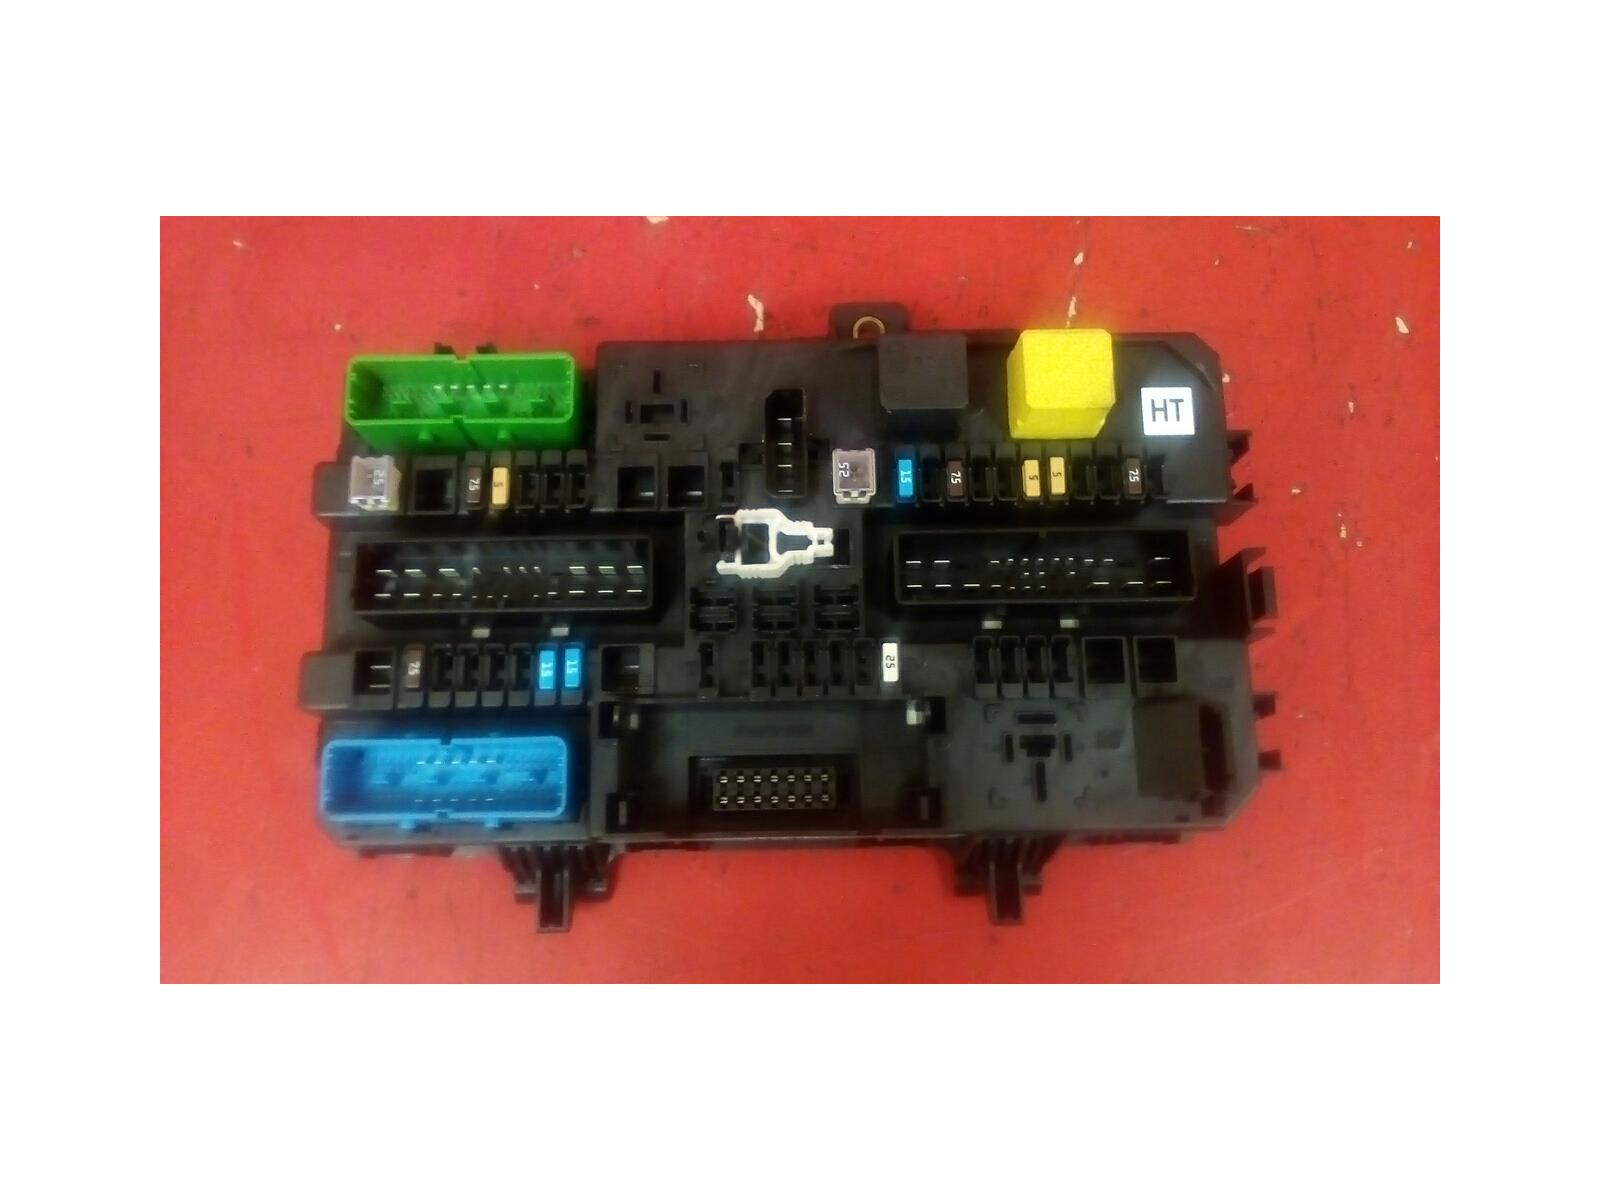 f2493c8a-de8f-48f7-ac1f-72fa0e9fa486_229305 Where Is The Fuse Box On A Vauxhall Astra Van on